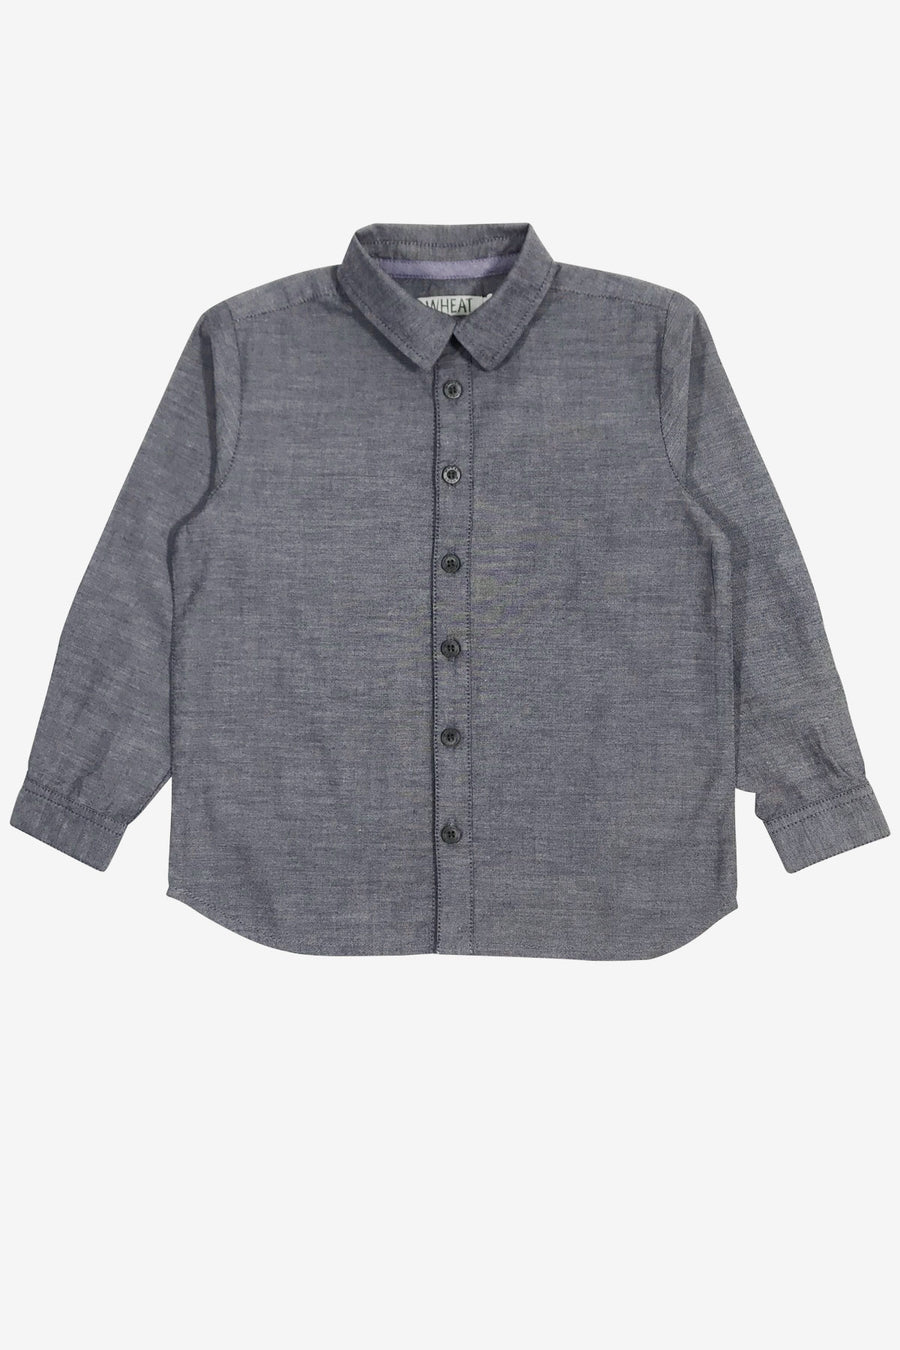 Wheat Pelle Shirt